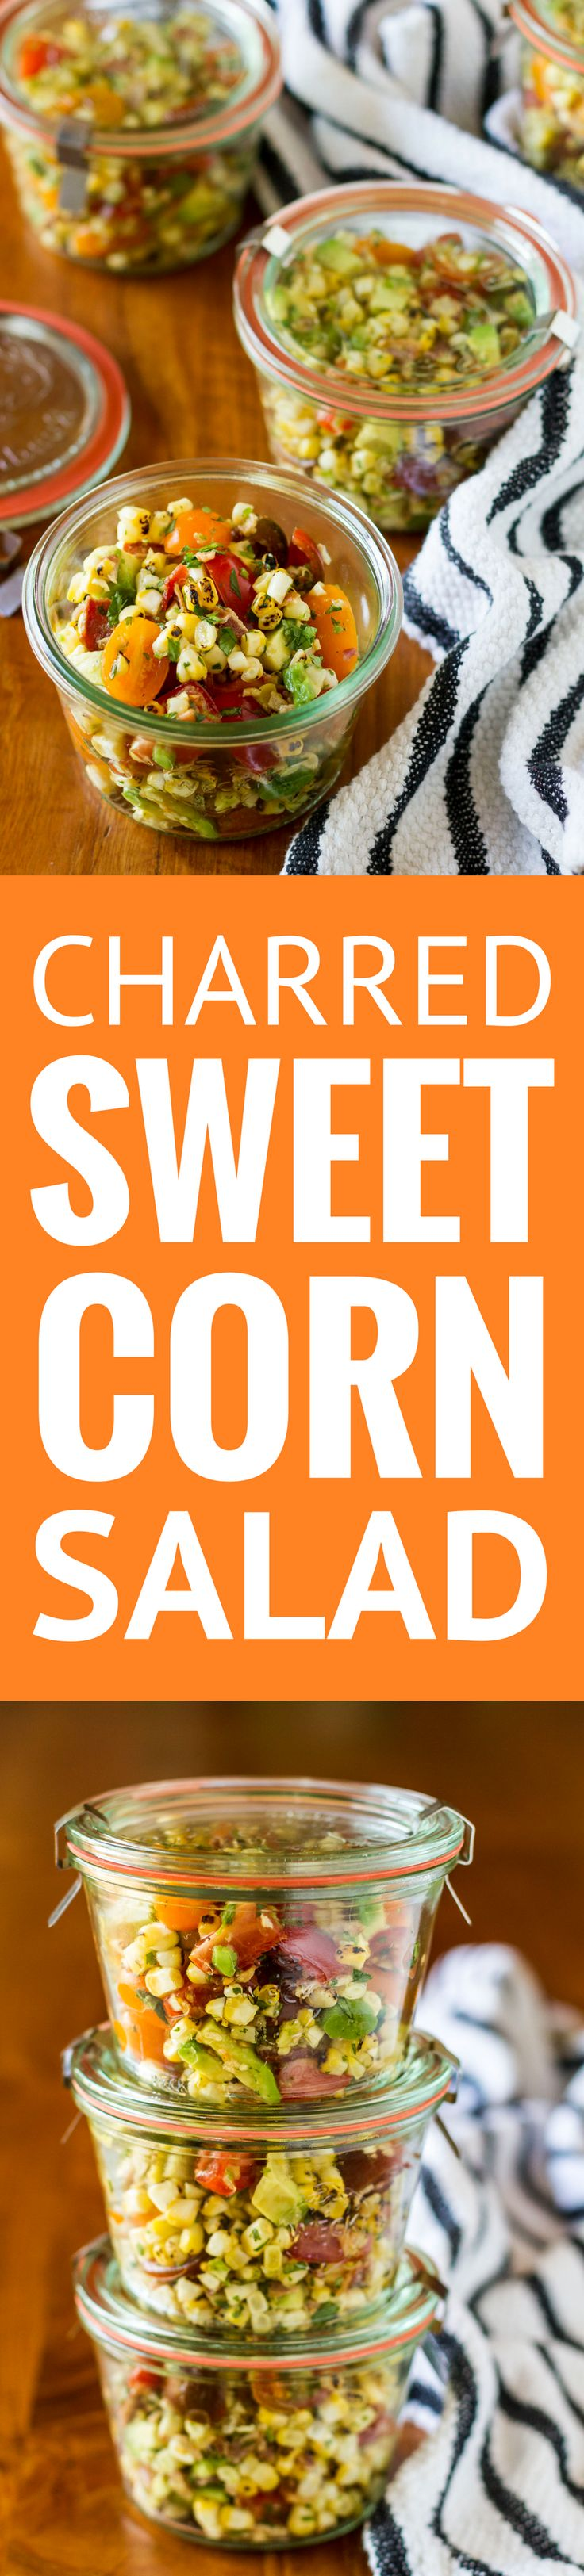 Charred Sweet Corn Bacon Avocado and Tomato Salad -- this light and healthy corn salad recipe is a perfect spring side dish and equally fabulous for summer potlucks… Bonus: it's simple and easy to make! | corn salad recipe easy | corn salad recipe summer | corn salad recipe cold | corn salad recipe side dishes | find the recipe on unsophisticook.com #SunshineSweetCorn #IC ad